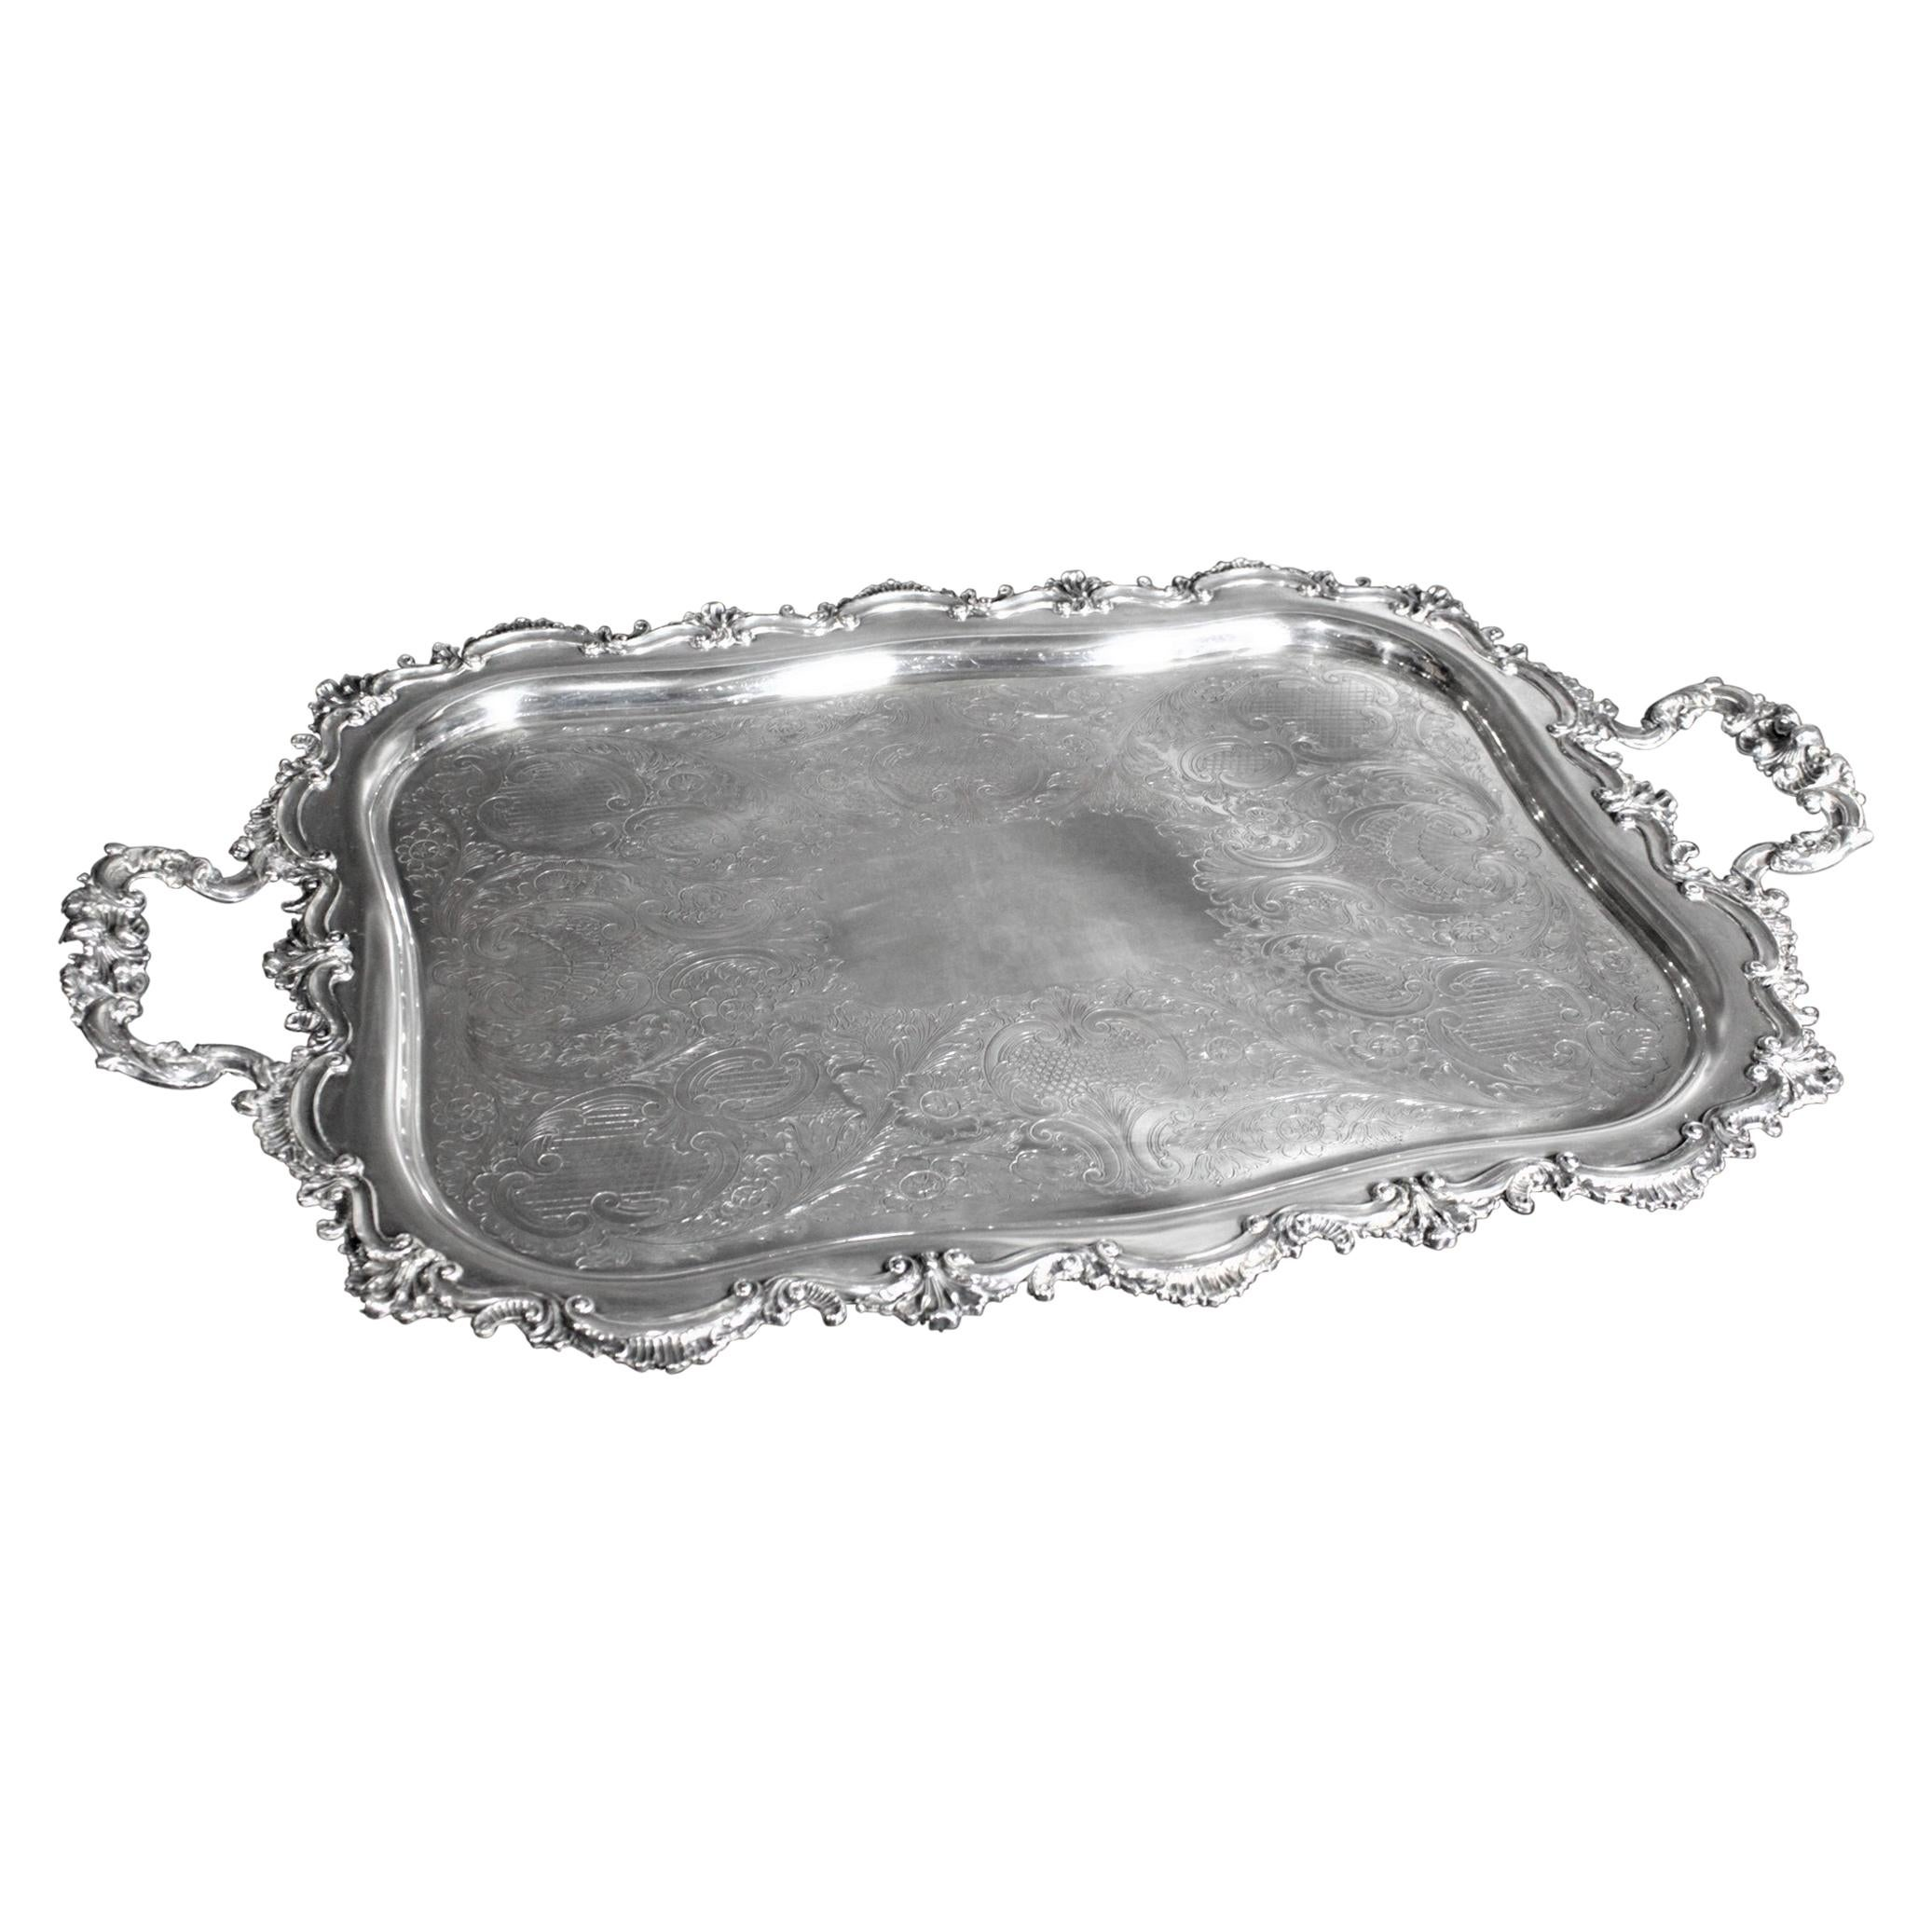 Large Antique English Silver Plated Serving Tray with Ornate Handles & Engraving